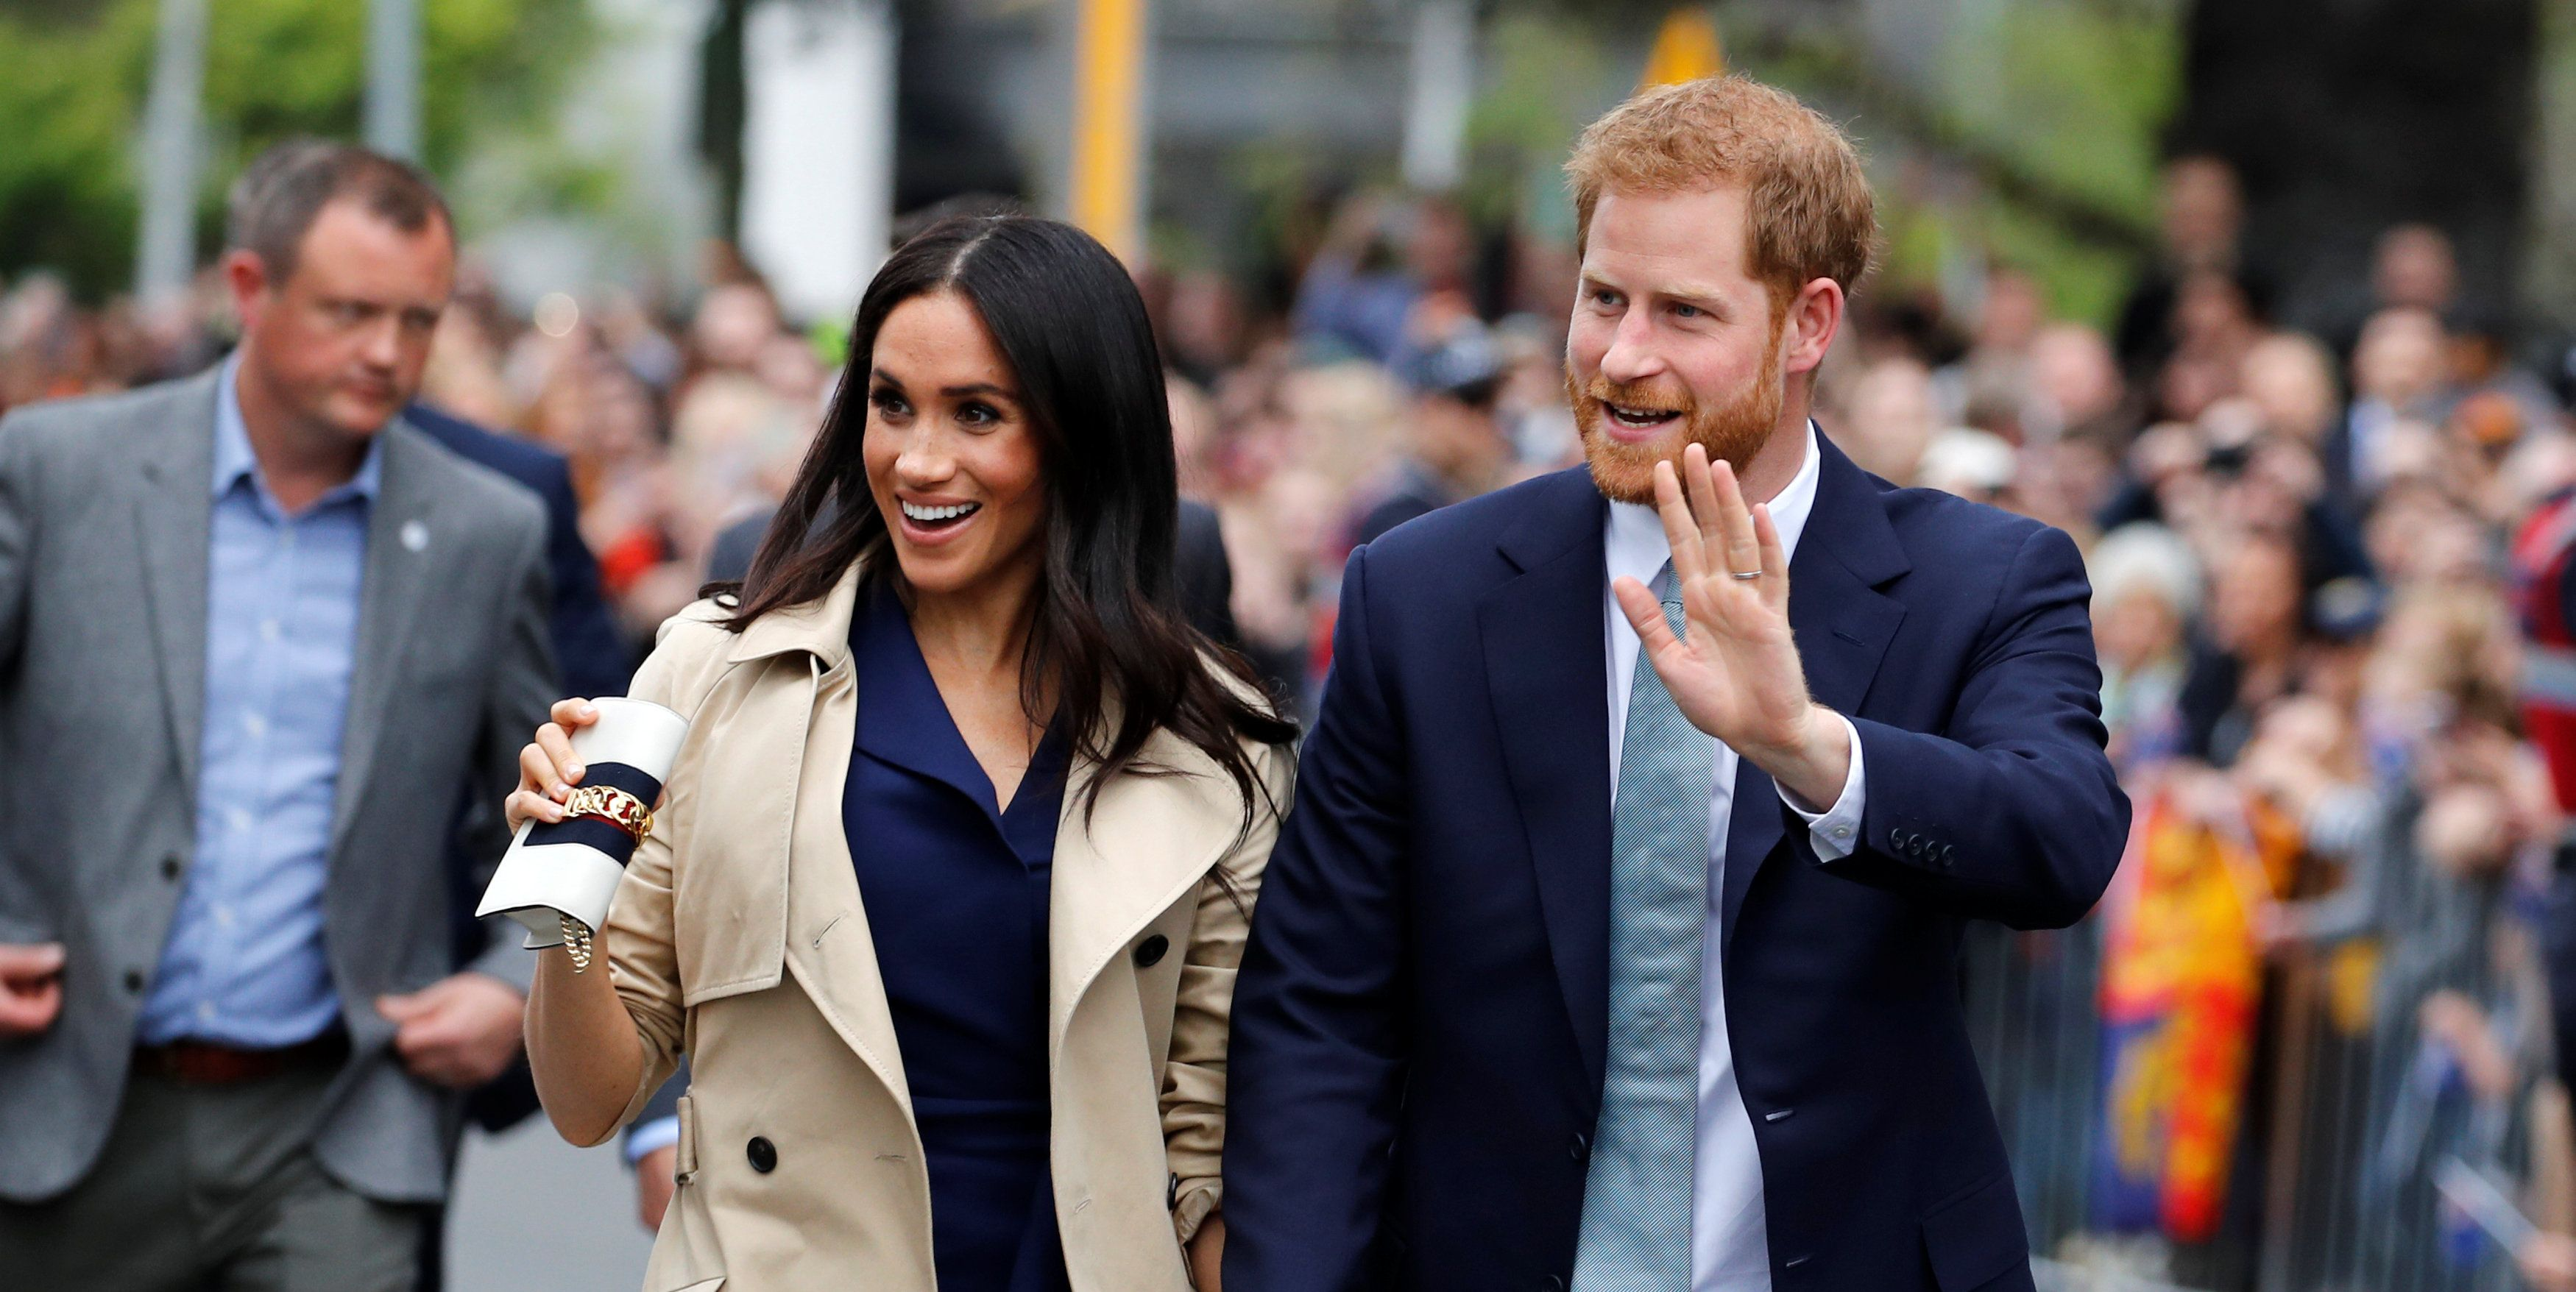 The Duke And Duchess Of Sussex Visit Australia - Day 3